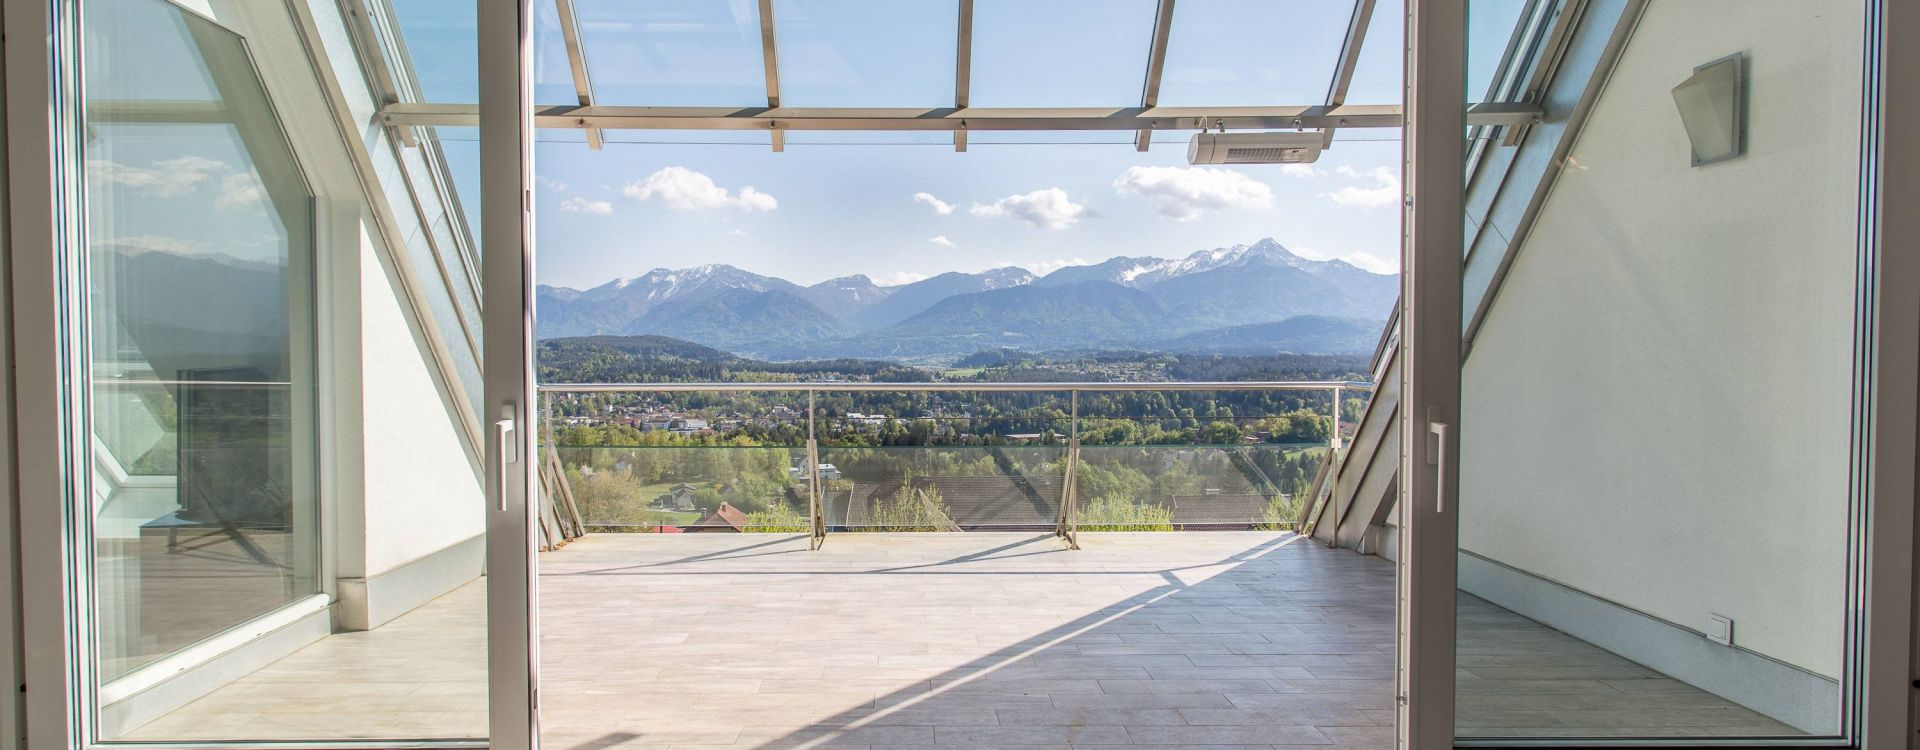 Penthouse mit Seeblick in Velden am Wörthersee